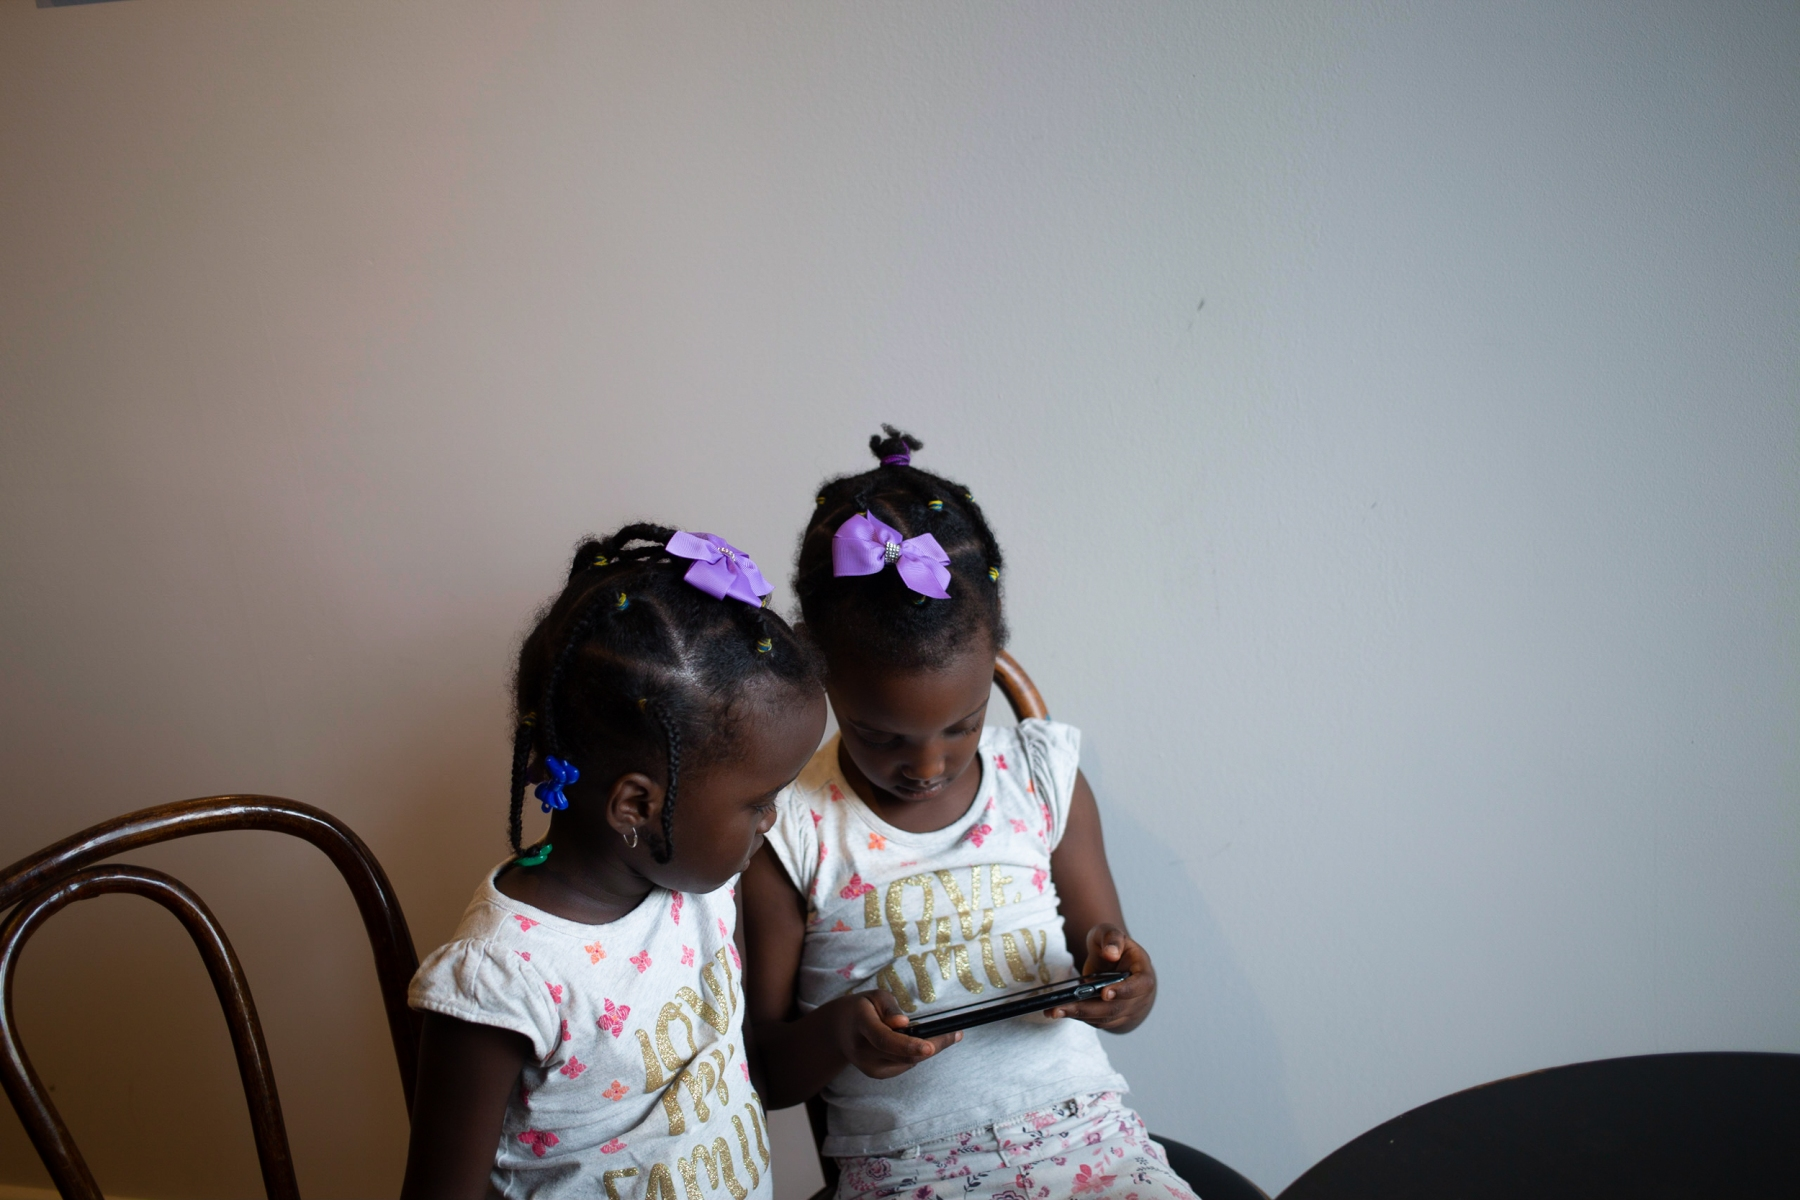 Mamba and Nadia's twin daughters, Kenza and Dieze, play games on Mamba's phone while he sells his Burundian-grown and Detroit-roasted coffee beans to a local coffee shop owner in Hamtramck, Mich.